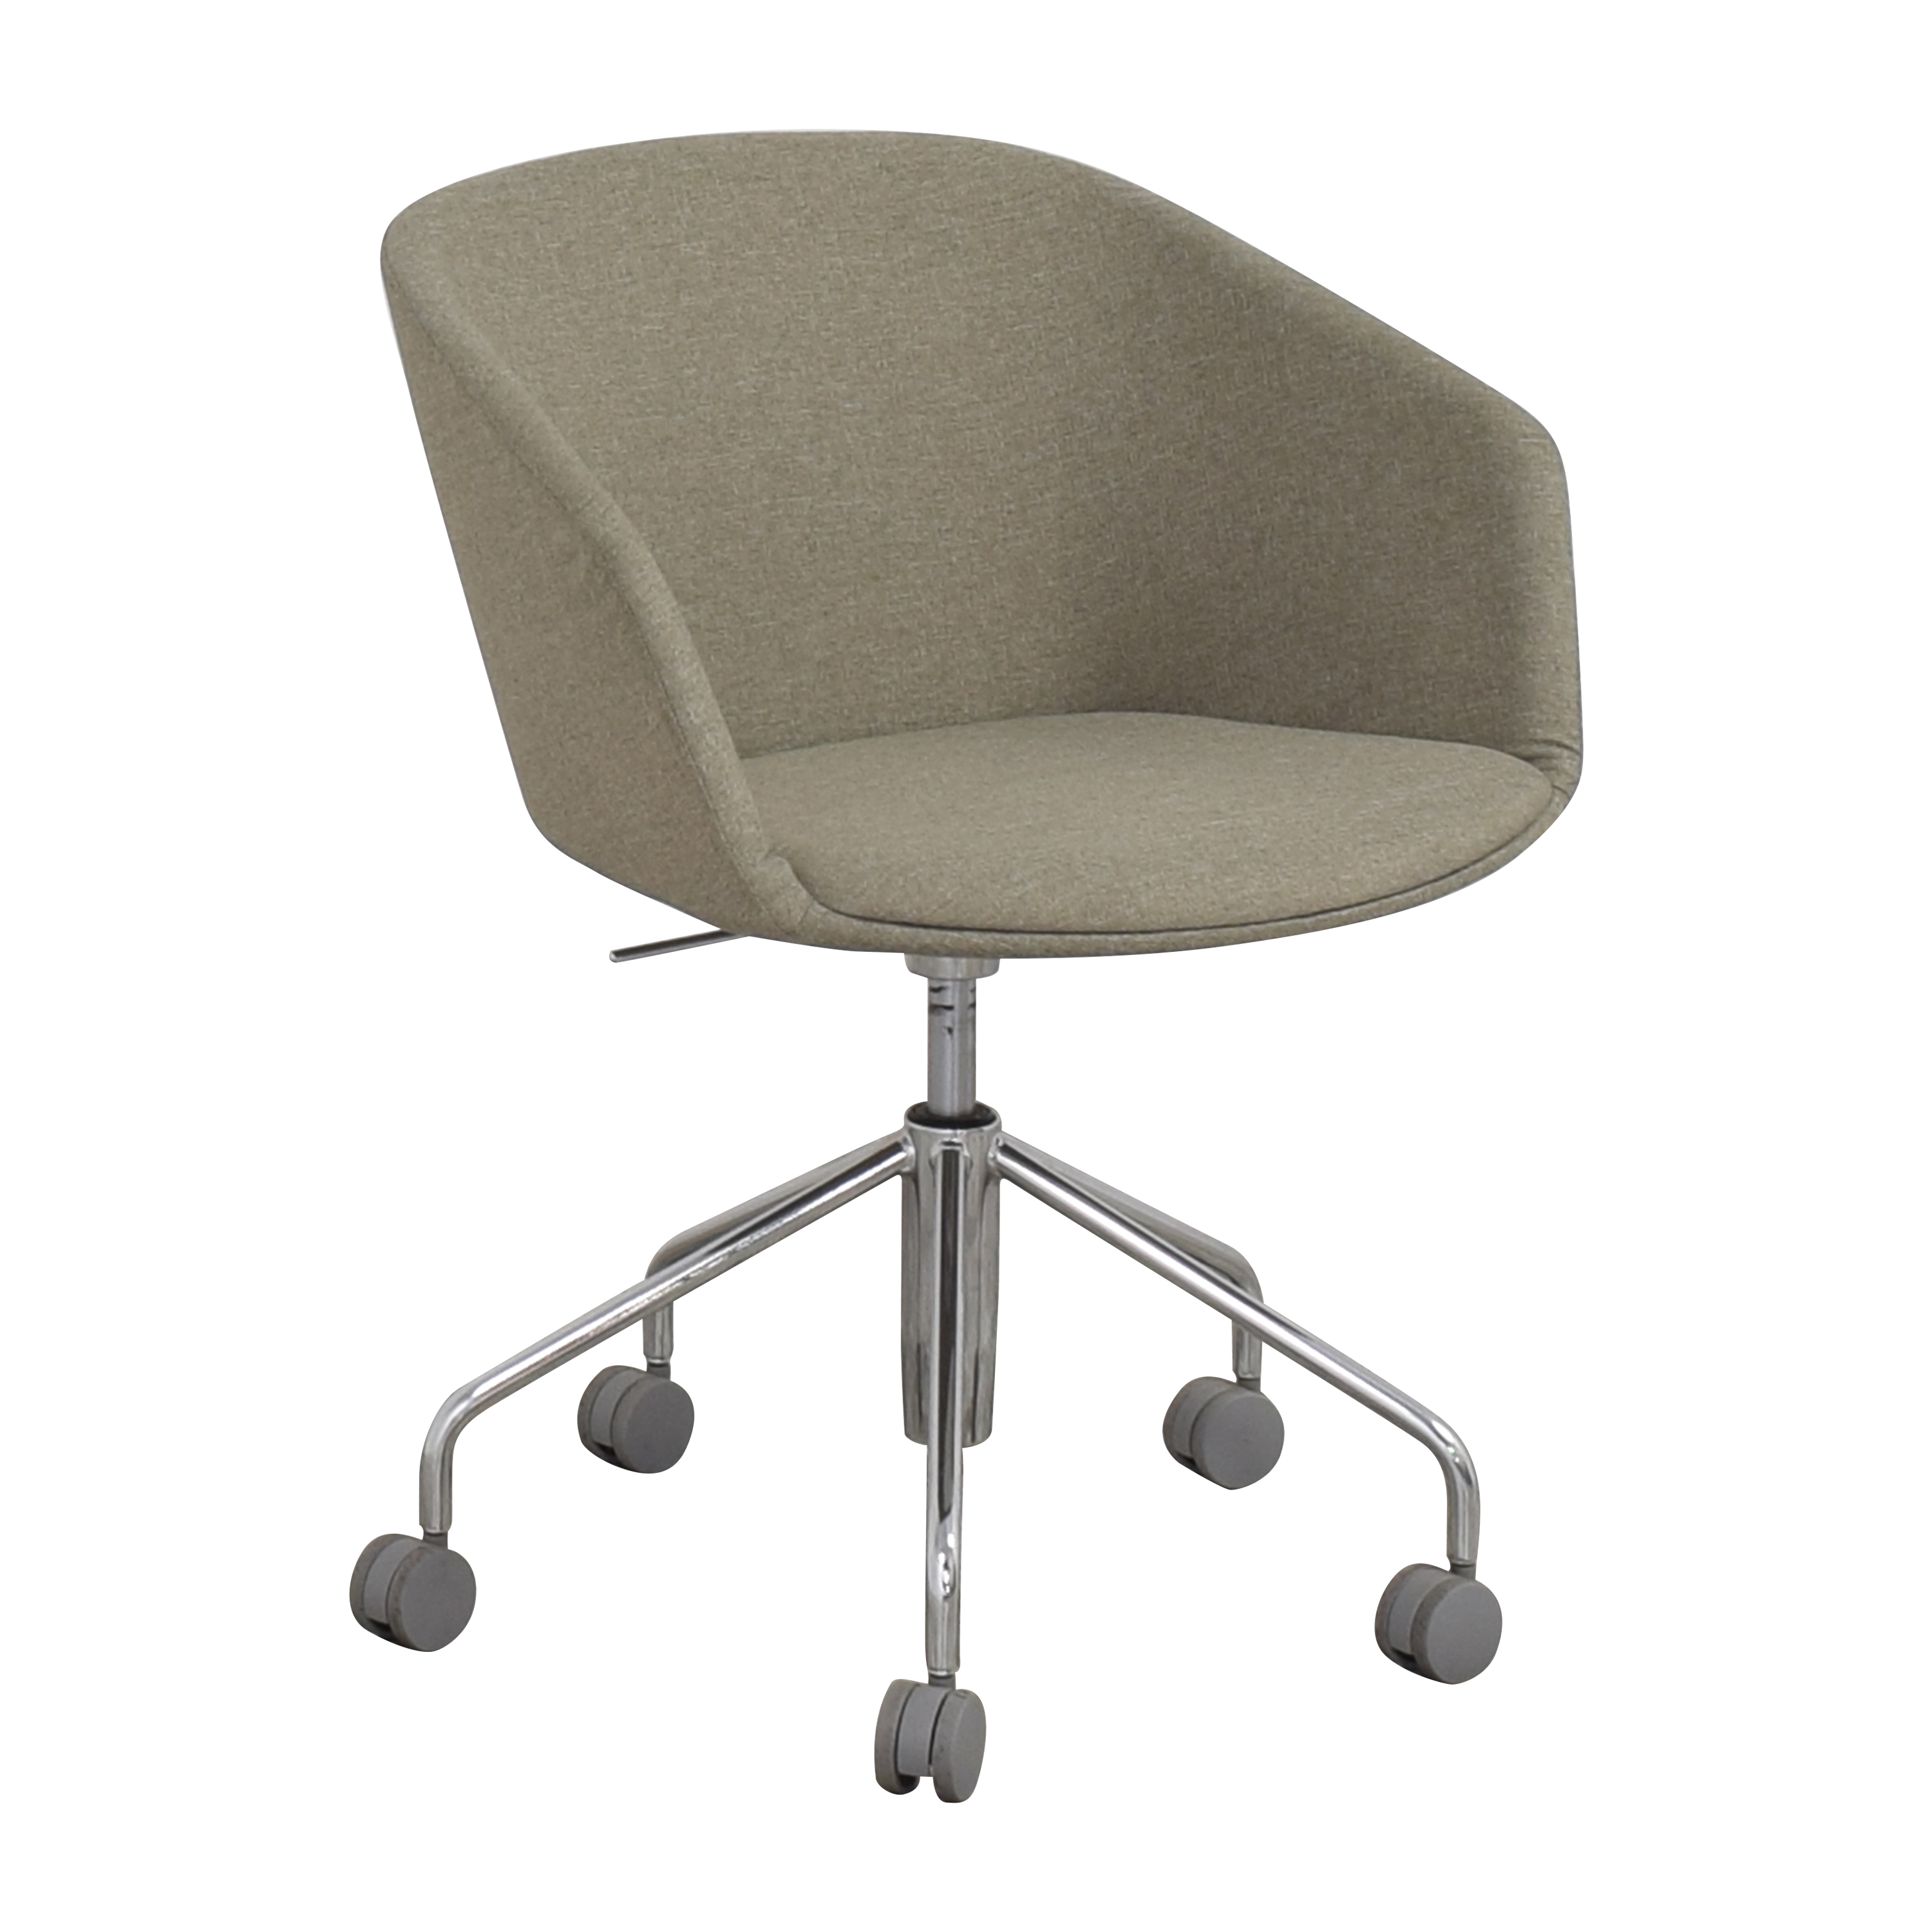 Poppin Poppin Pitch Meeting Chair coupon